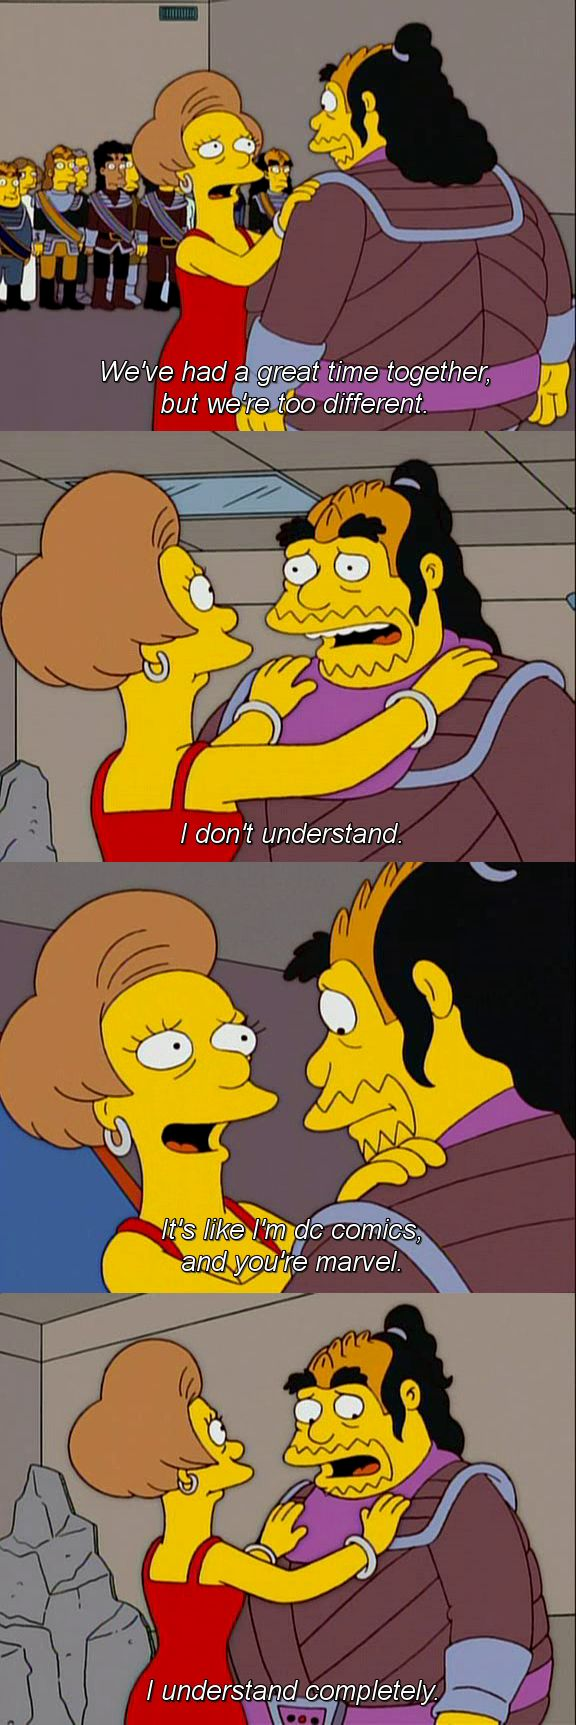 The Simpsons. Comic Book Guy & Edna Krabappel. My Big Fat Greek Wedding - season 15.